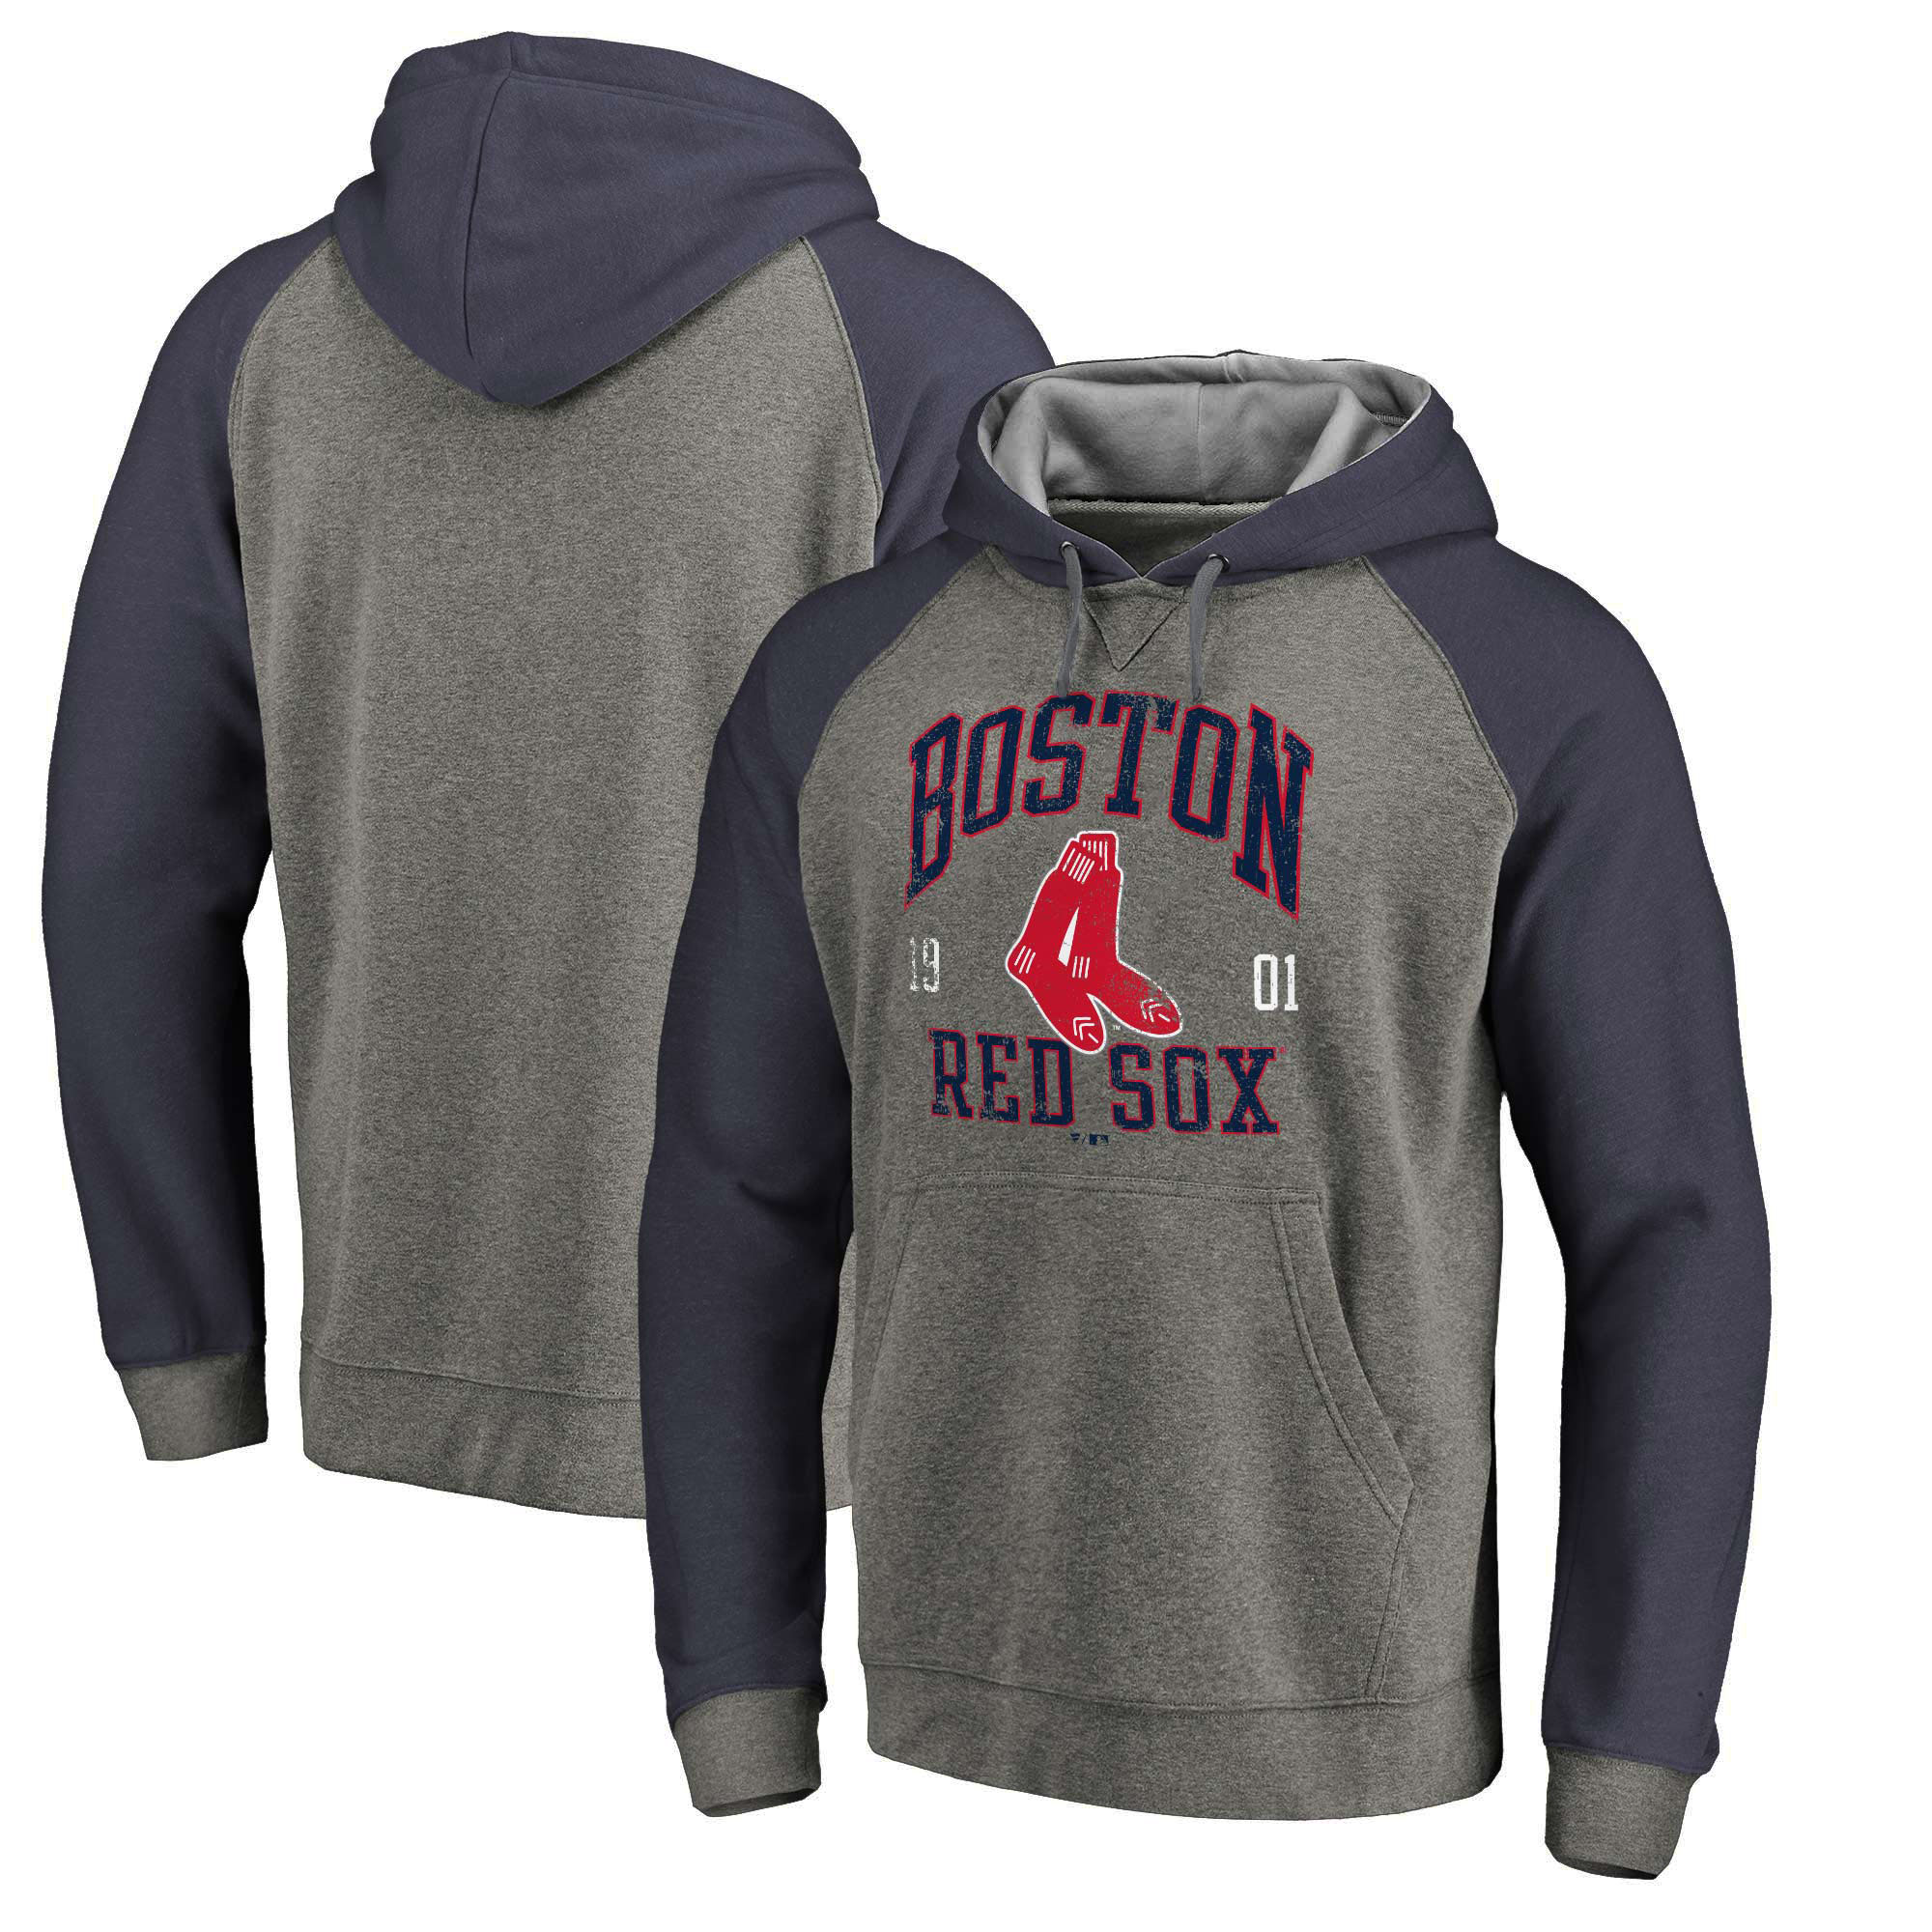 Boston Red Sox Fanatics Branded Cooperstown Collection Old Favorite Tri-Blend Pullover Hoodie - Heathered Gray/Navy